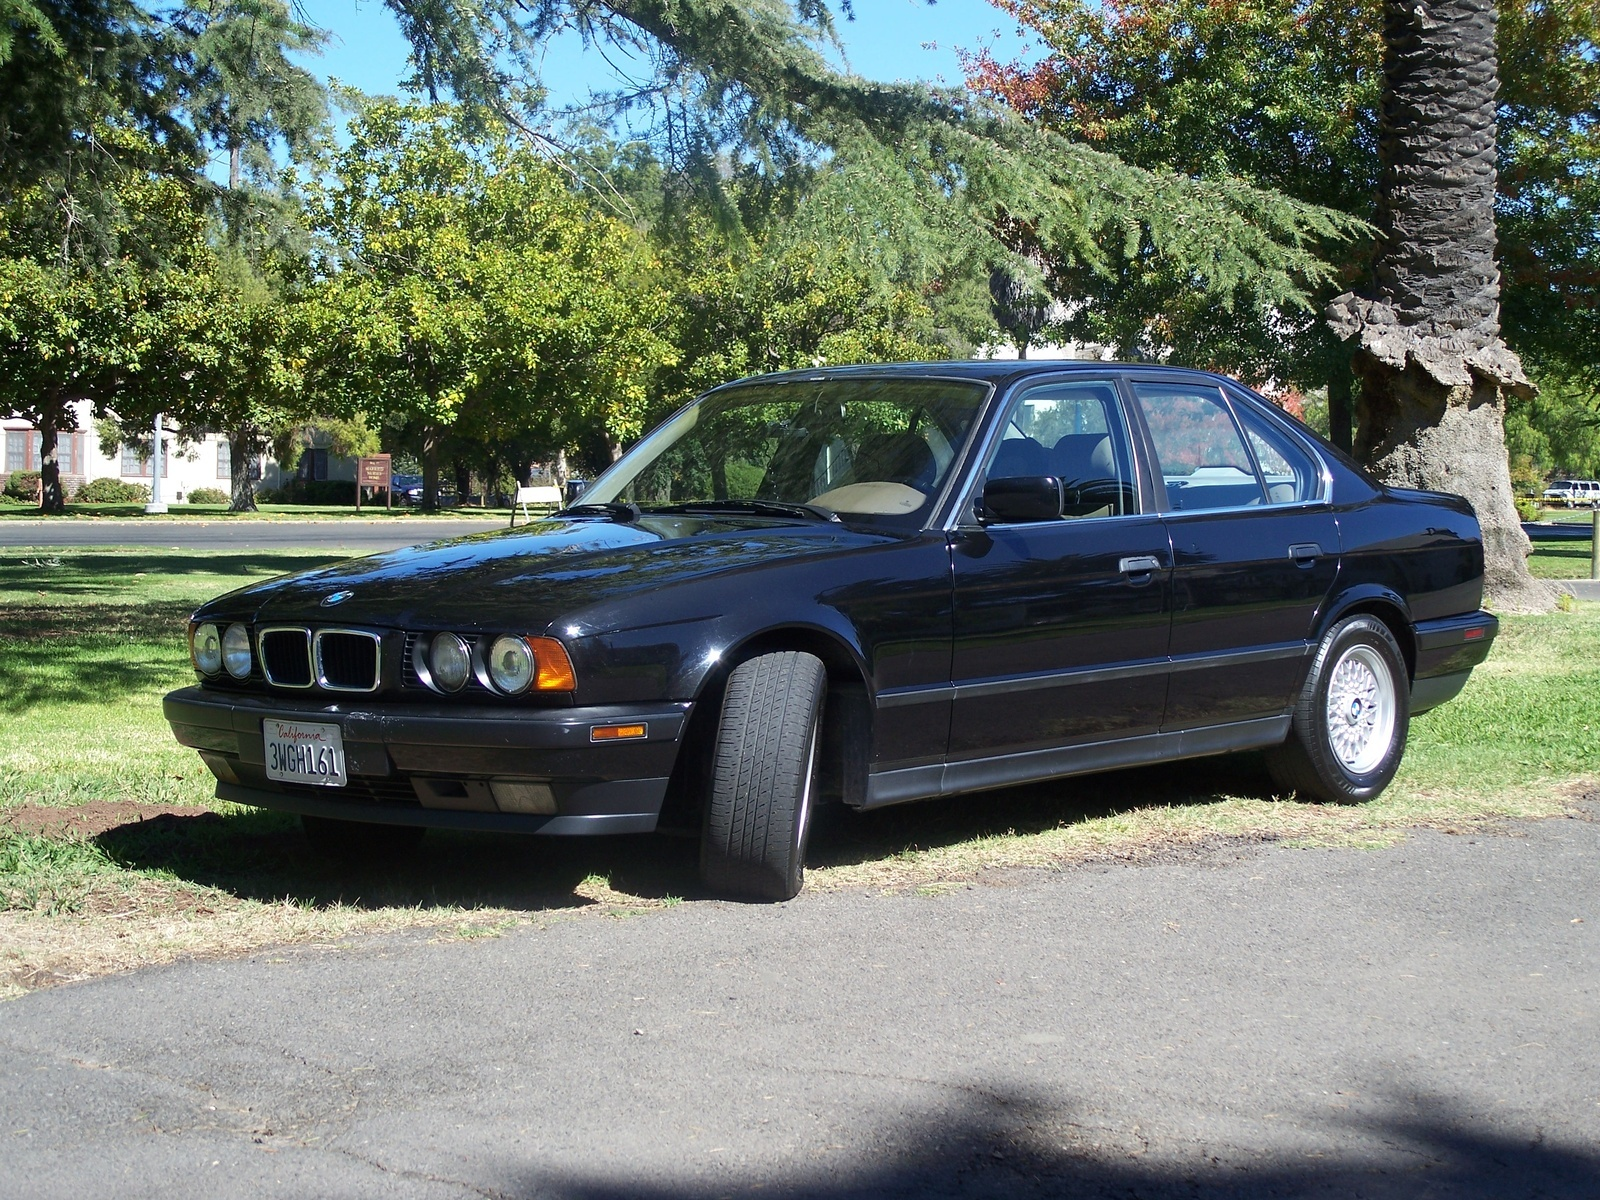 Picture of 1994 bmw 5 series 530i gallery_worthy